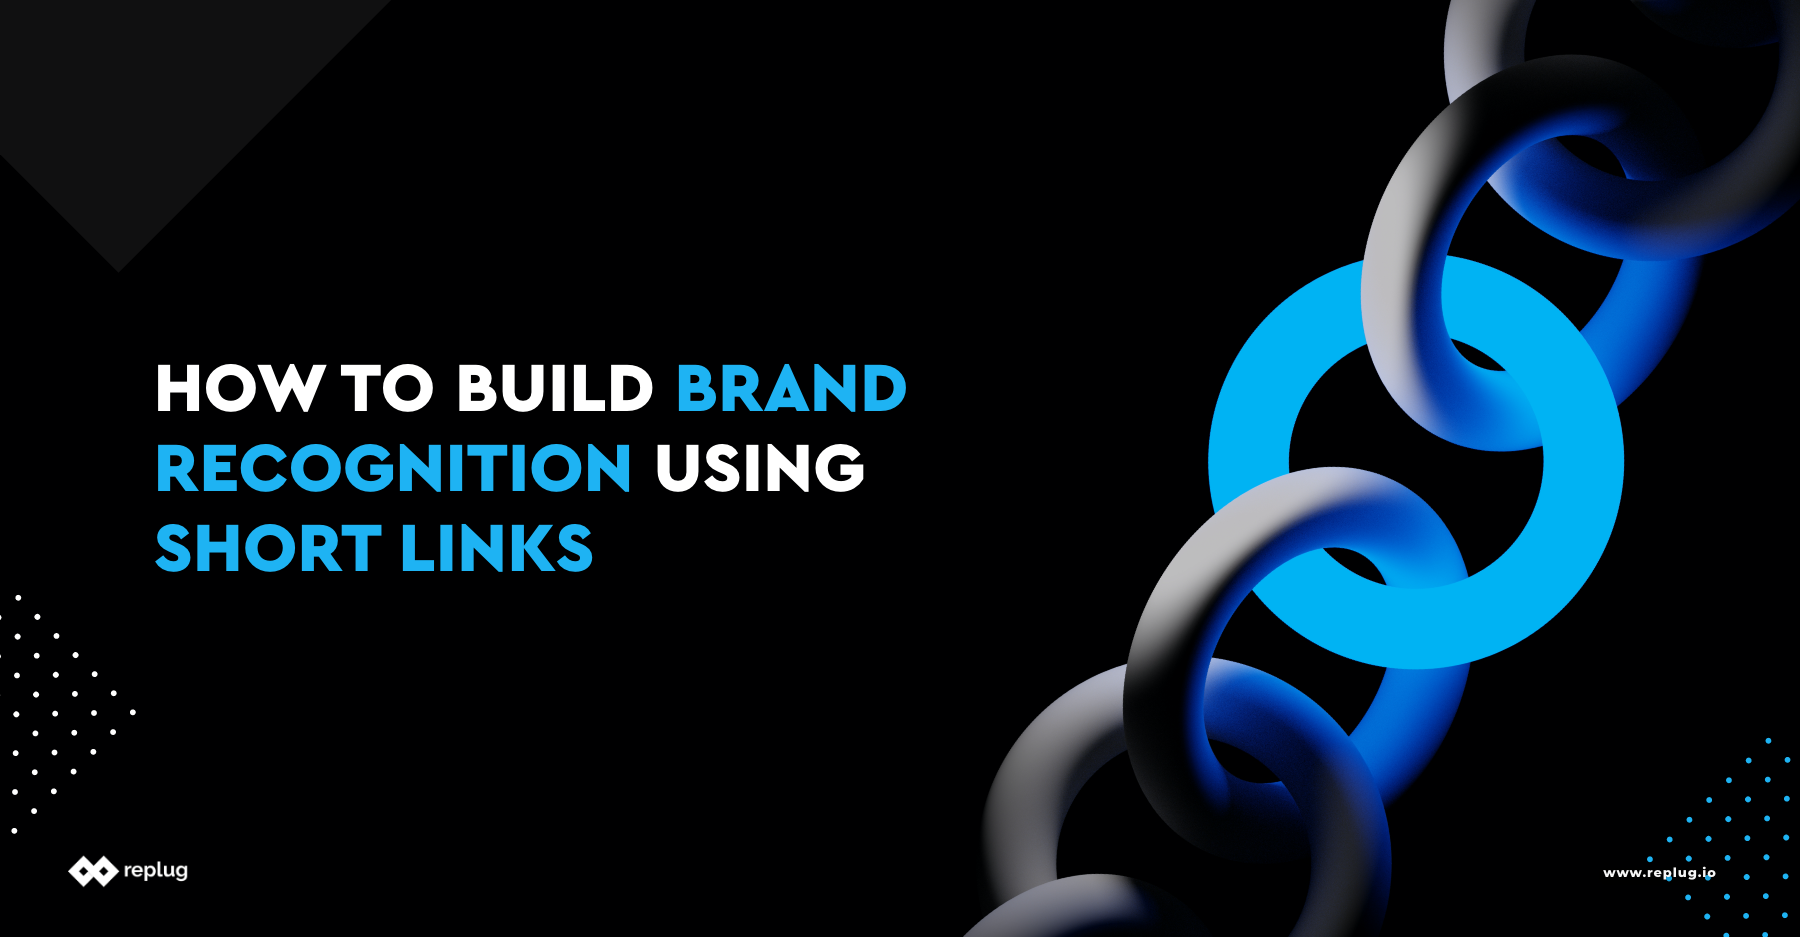 How To Build Brand Recognition using Short Links